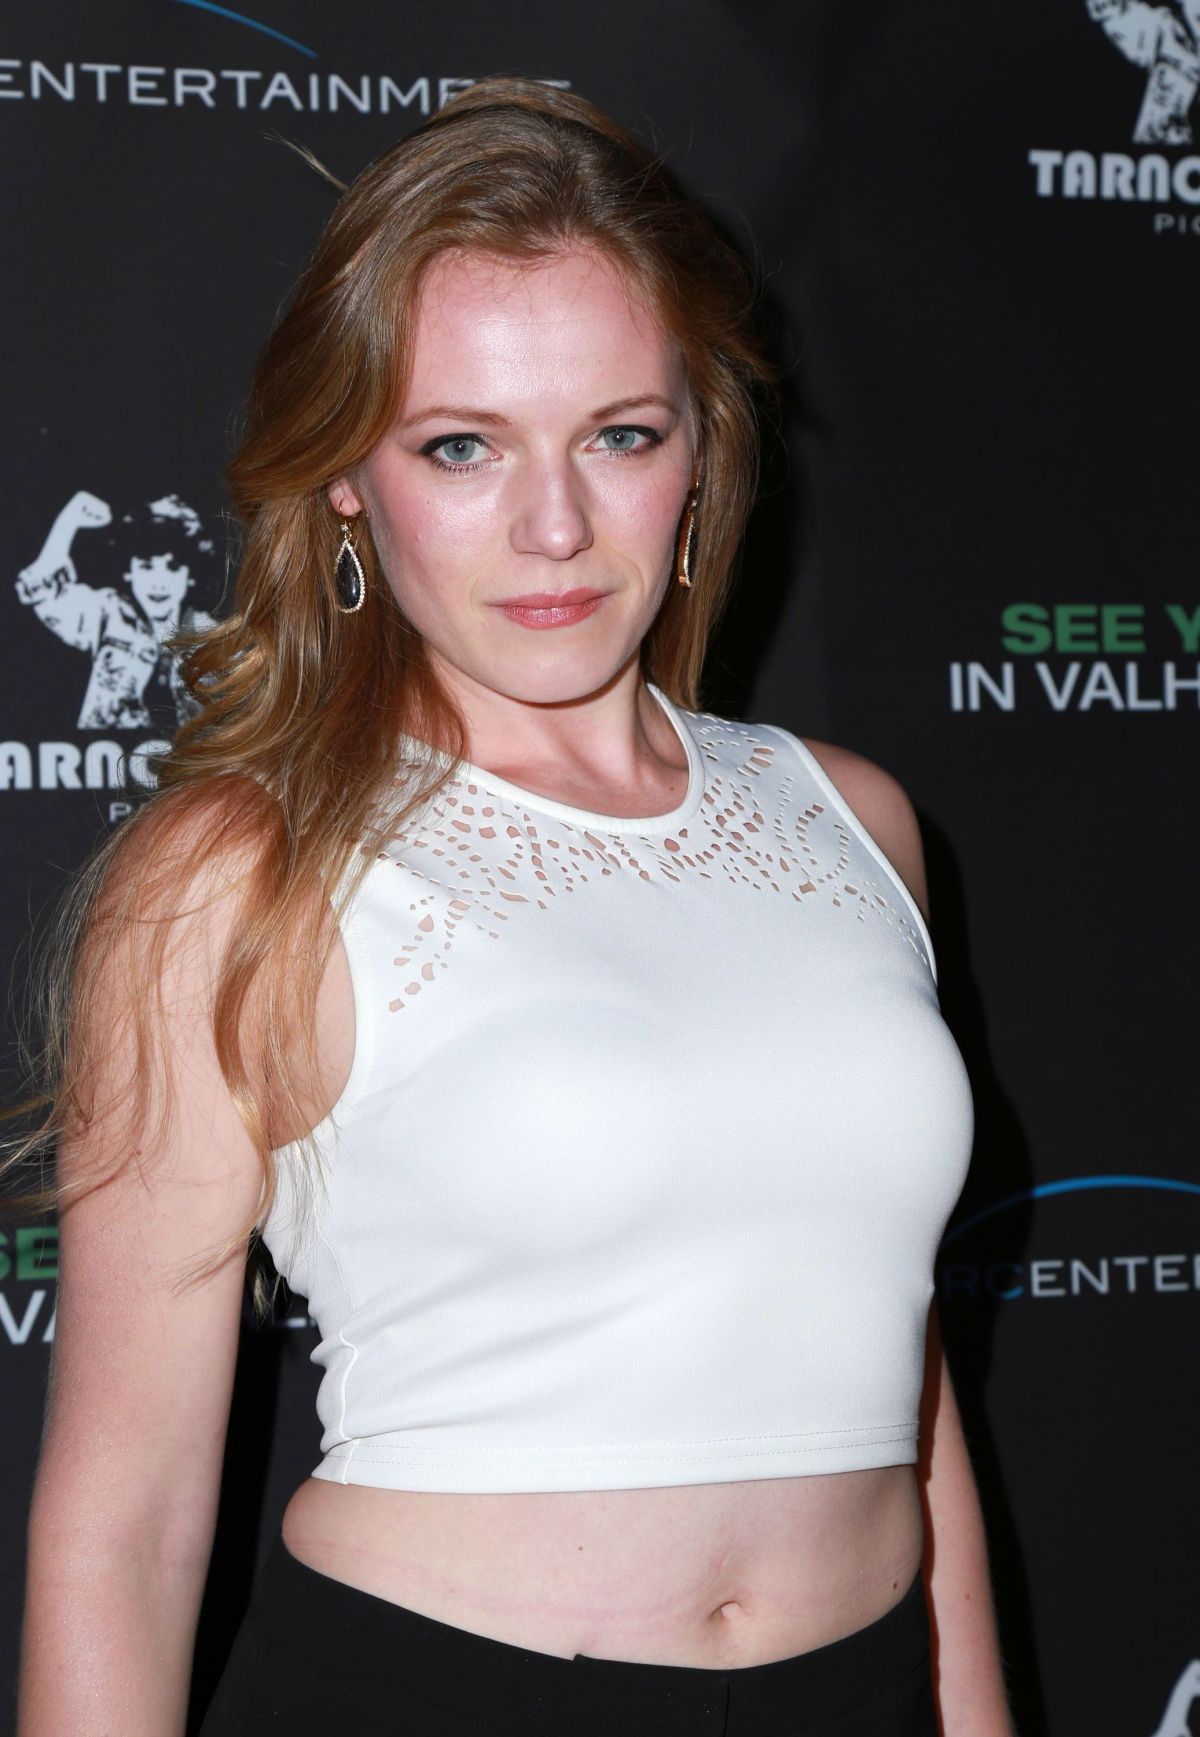 EMMA BELL at See You in Valhalla Premiere in Hollywood